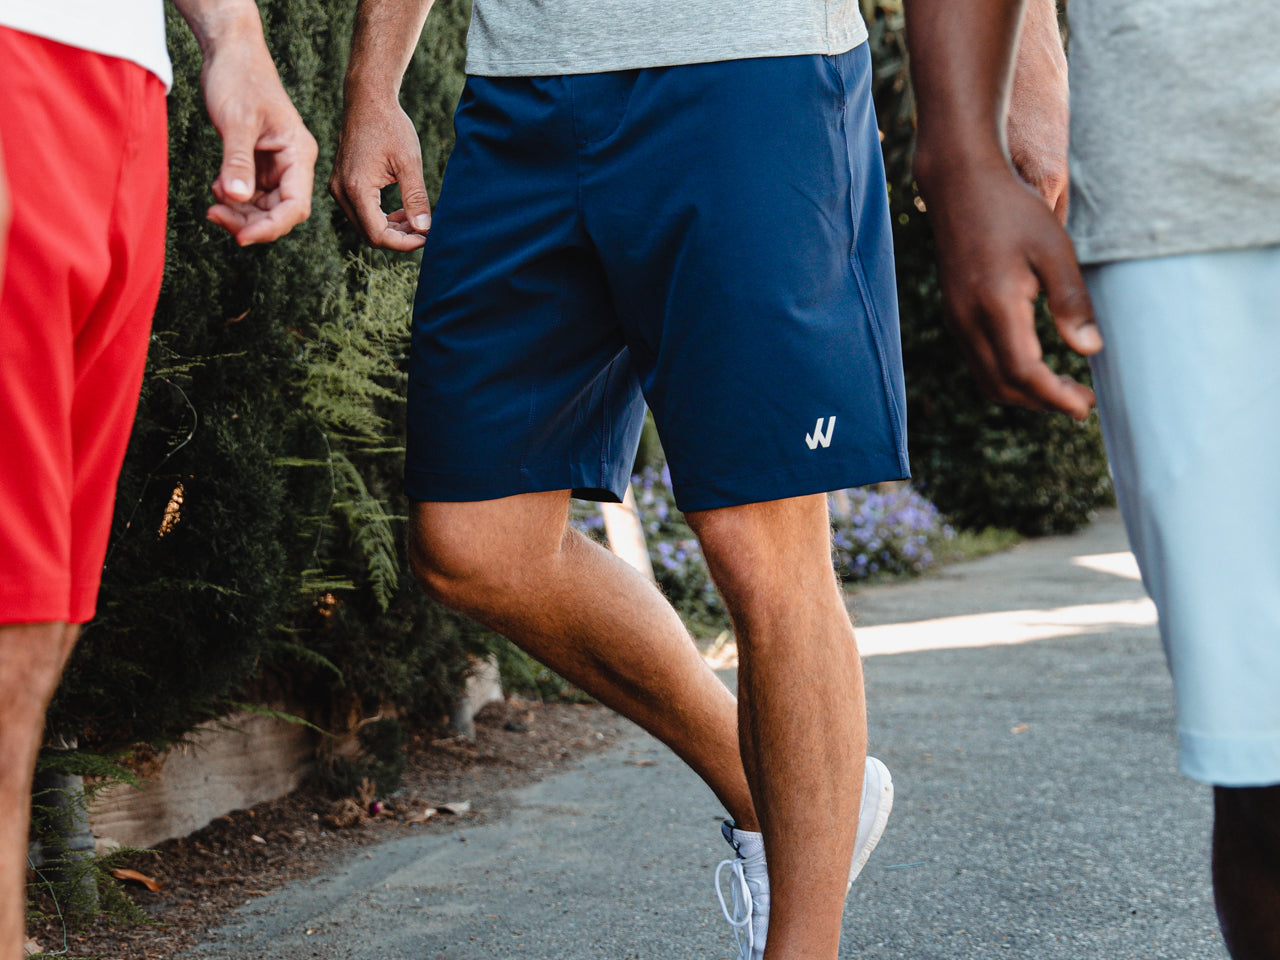 What to Wear With Workout Shorts